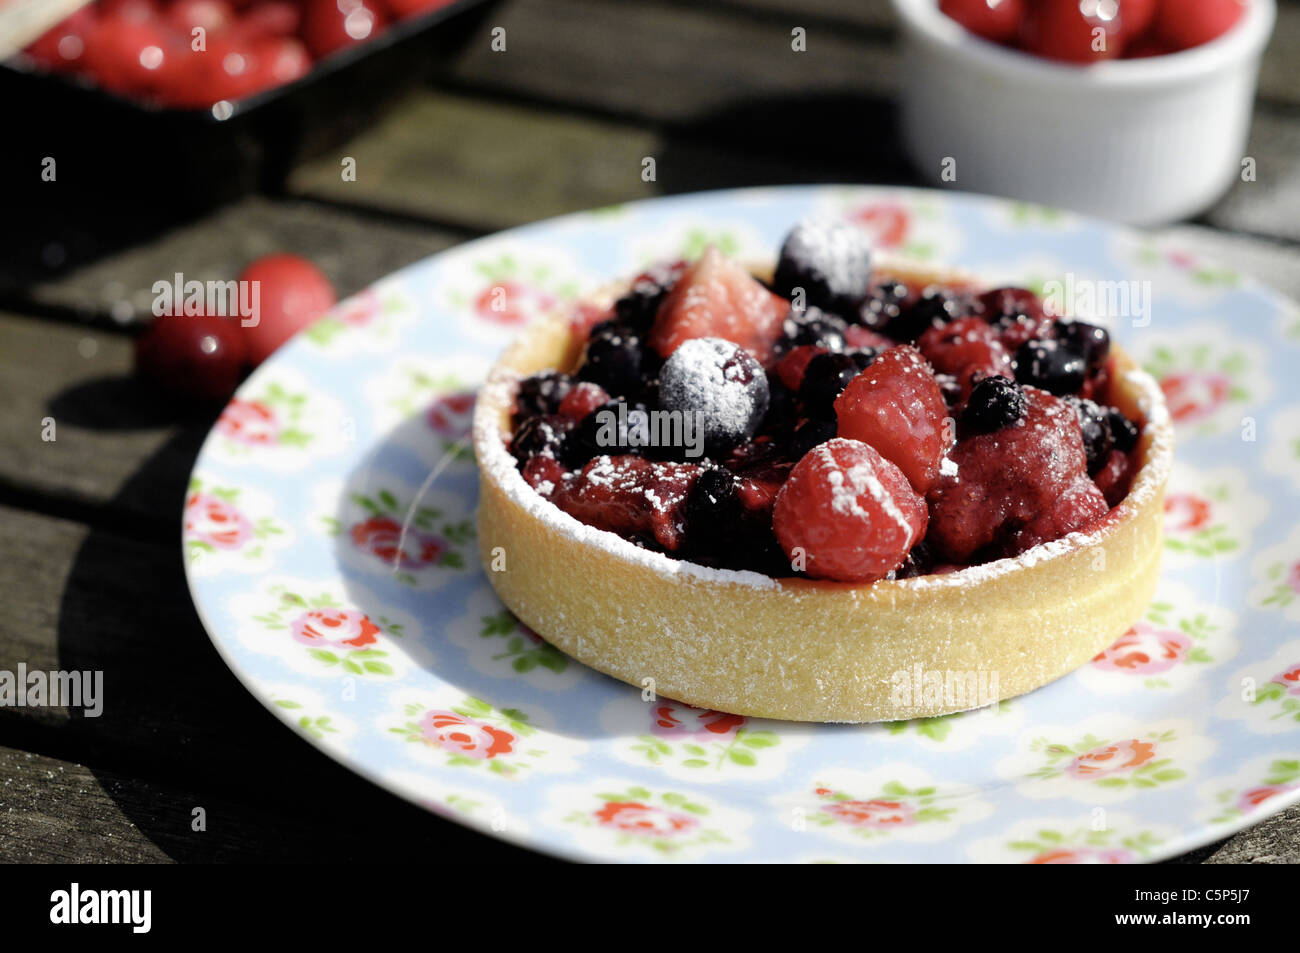 Berry tart outside on a flowery plate - Stock Image